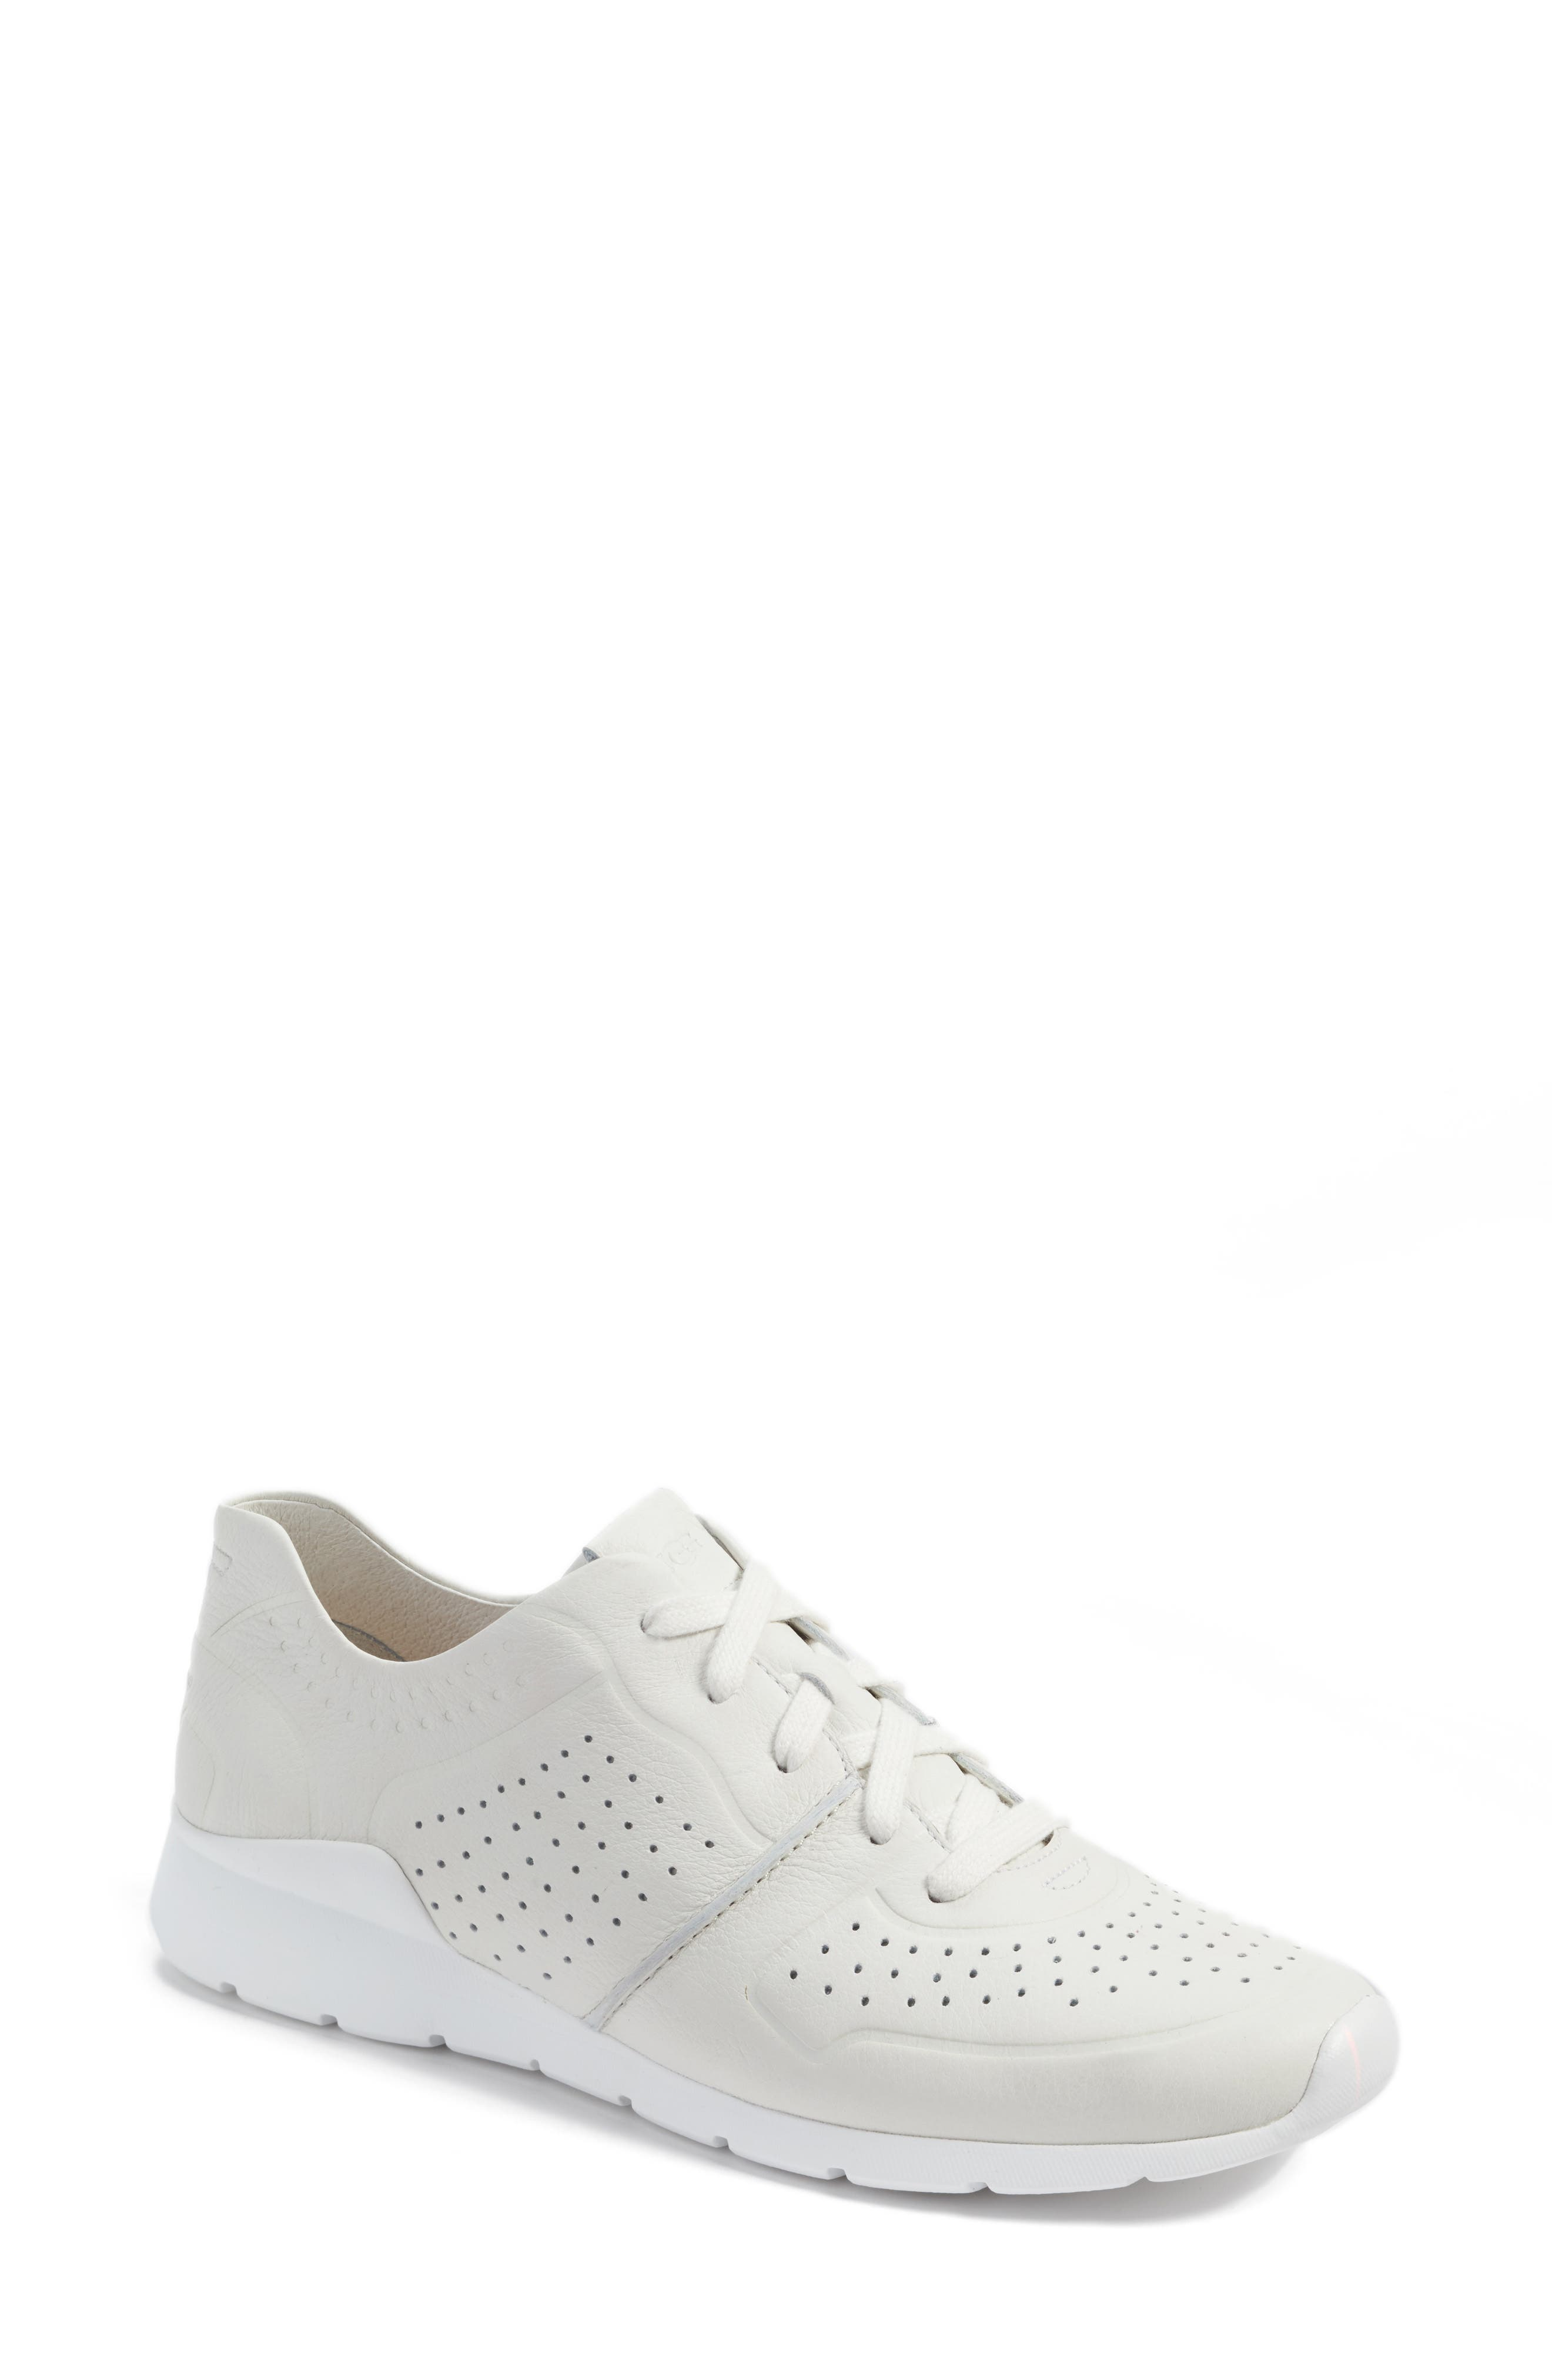 Tye Sneaker,                         Main,                         color, White Leather